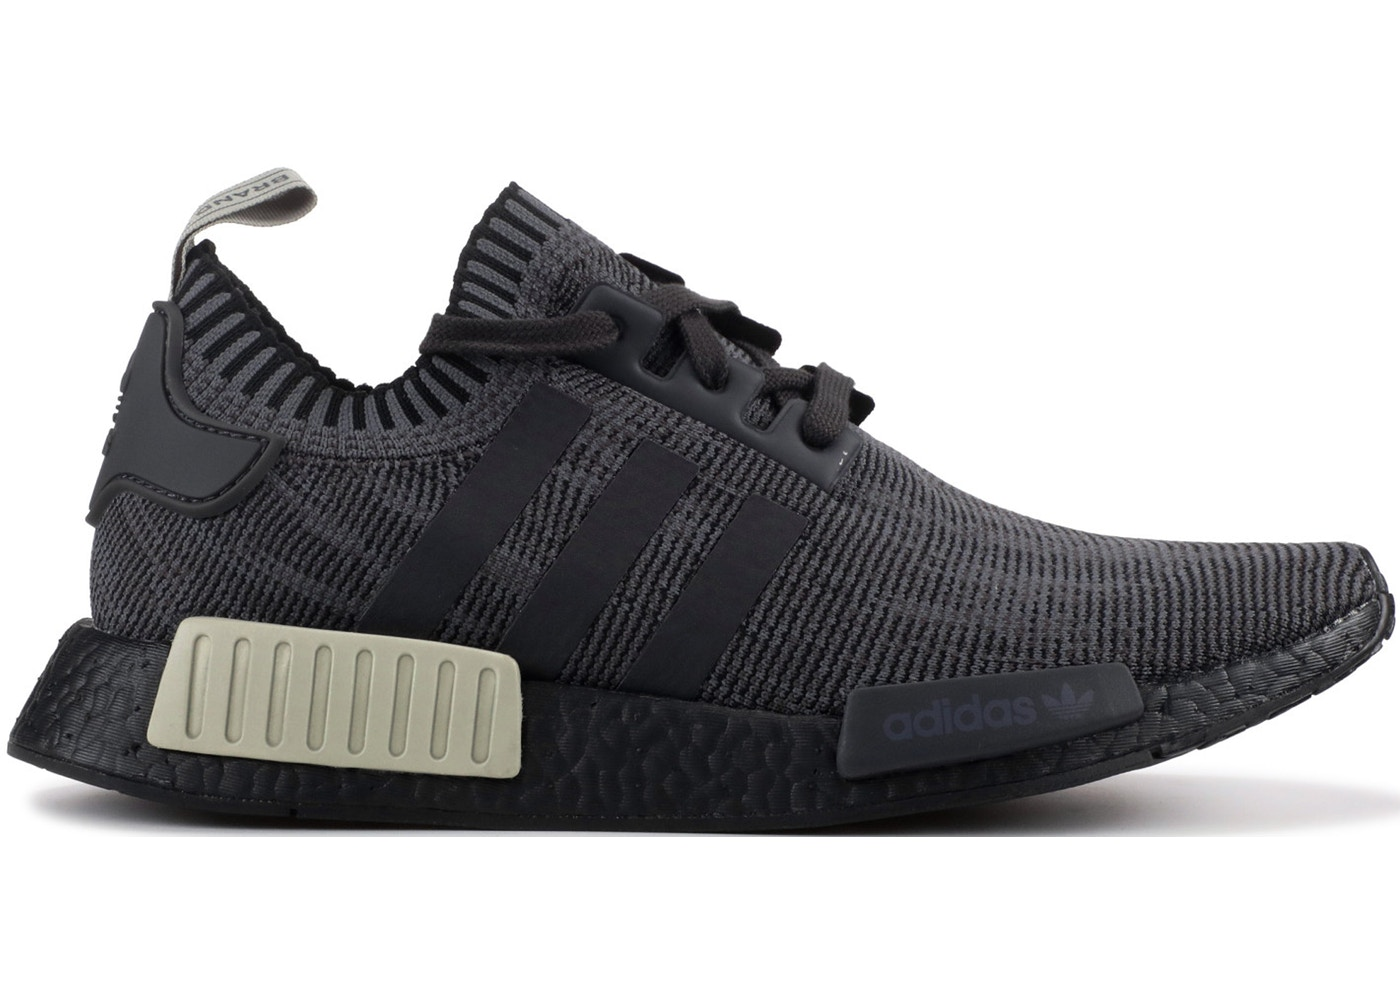 new styles 6a03c bfc26 adidas NMD R1 Black Olive